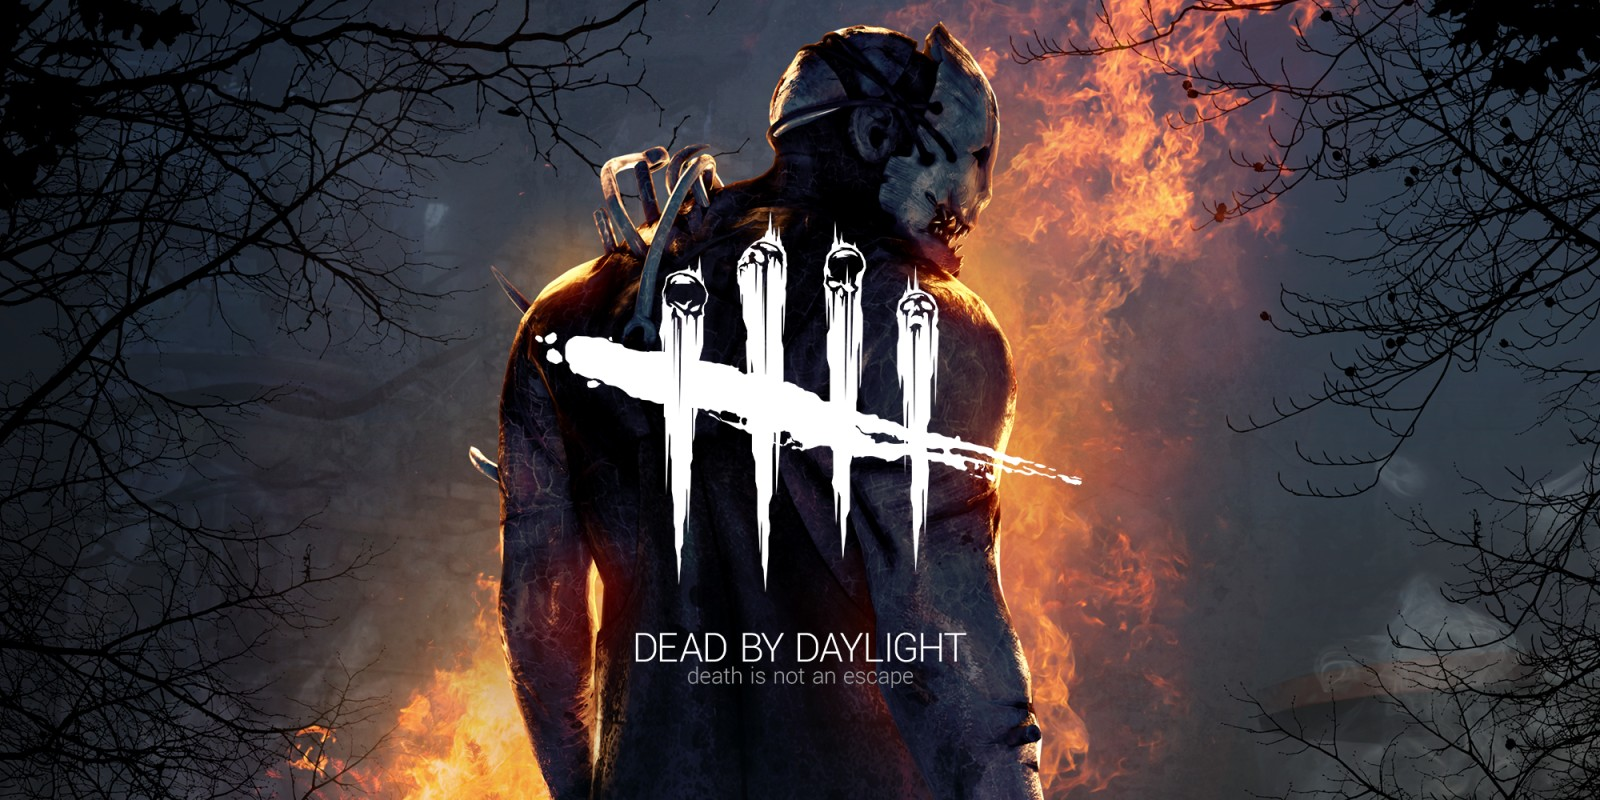 H2x1_NSwitch_DeadByDaylight_image1600w